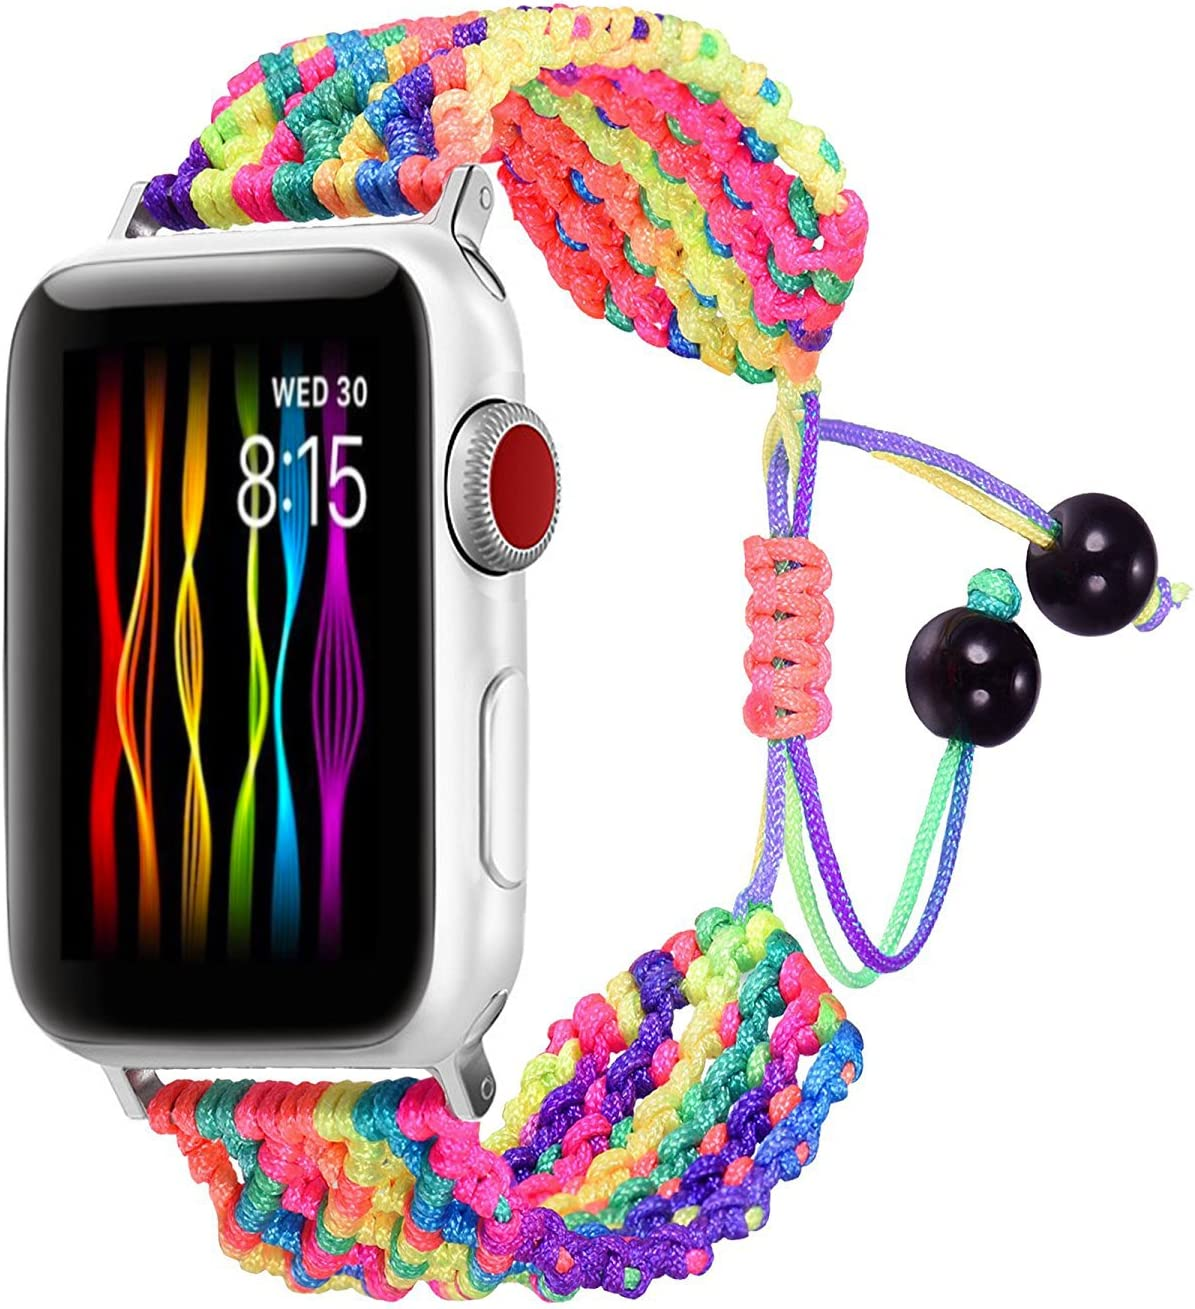 Bandmax Compatible for Rainbow LGBT Apple Watch Band 38MM 40MM Braided Nylon Friendship Rope iwatch Series 5/4/3/2/1 Replacement Wristband Straps Accessories Weave Bohemia Bracelet Drawstring Clasp